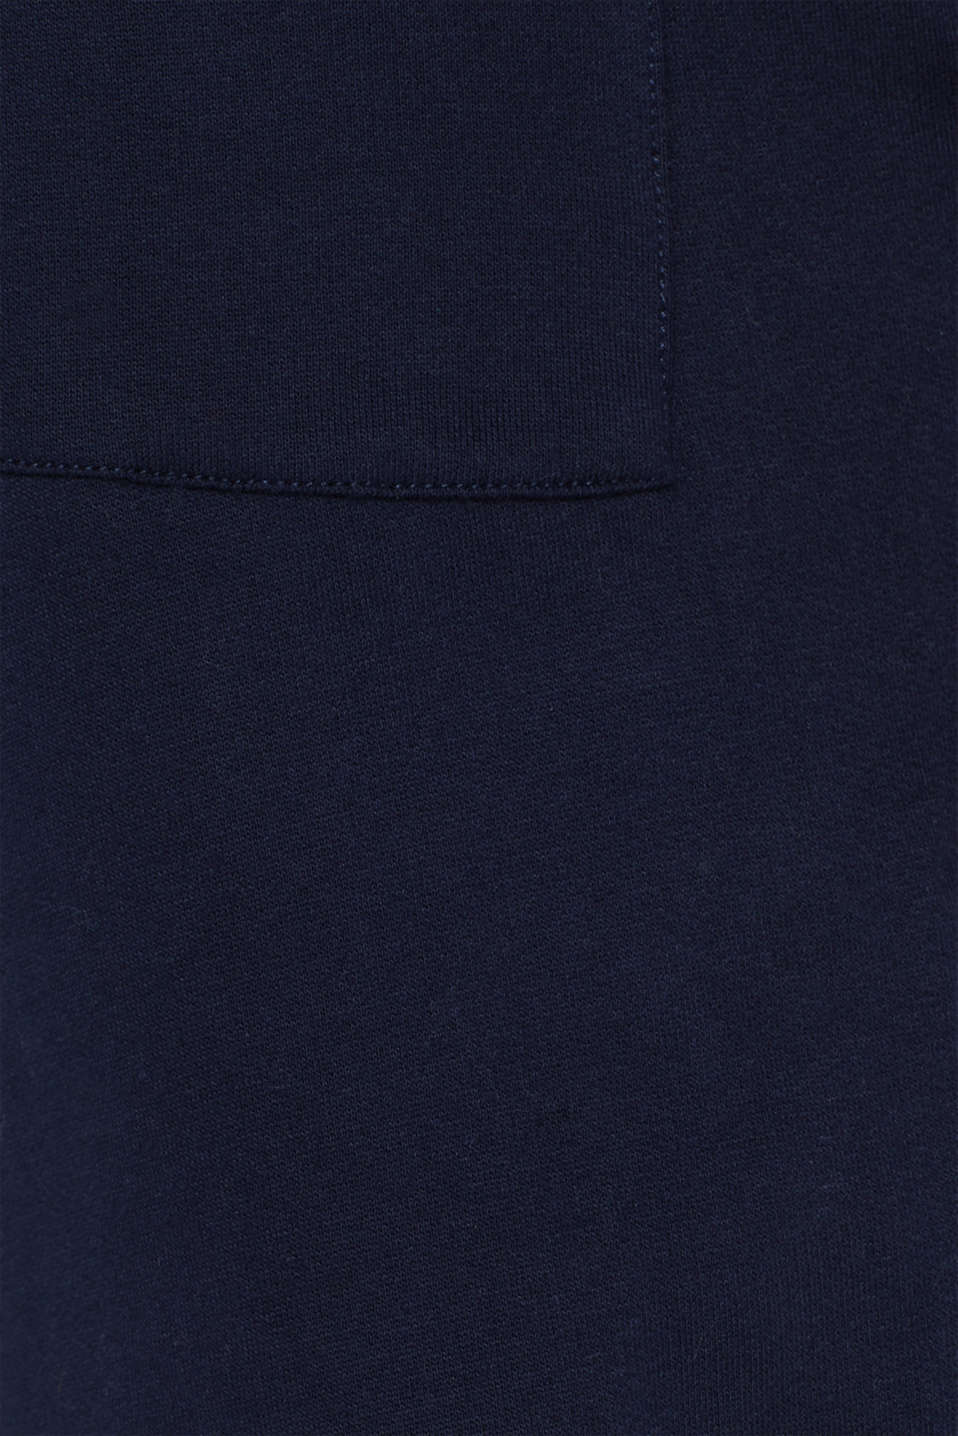 Tracksuit bottoms with a logo print, 100% cotton, NAVY, detail image number 4